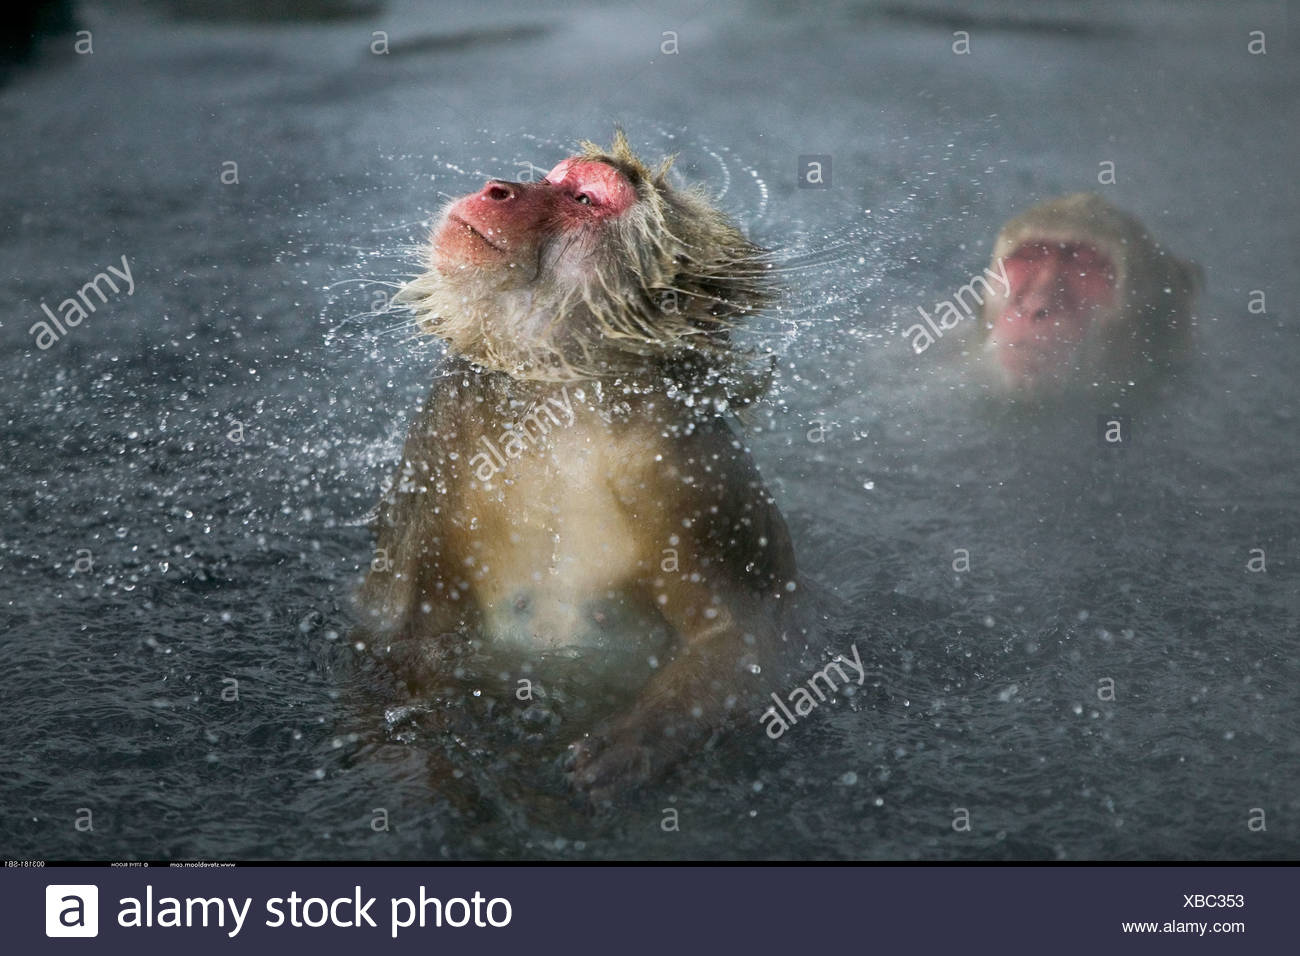 Snow monkey shaking off water Jigokudani National Park Japan - Stock Image